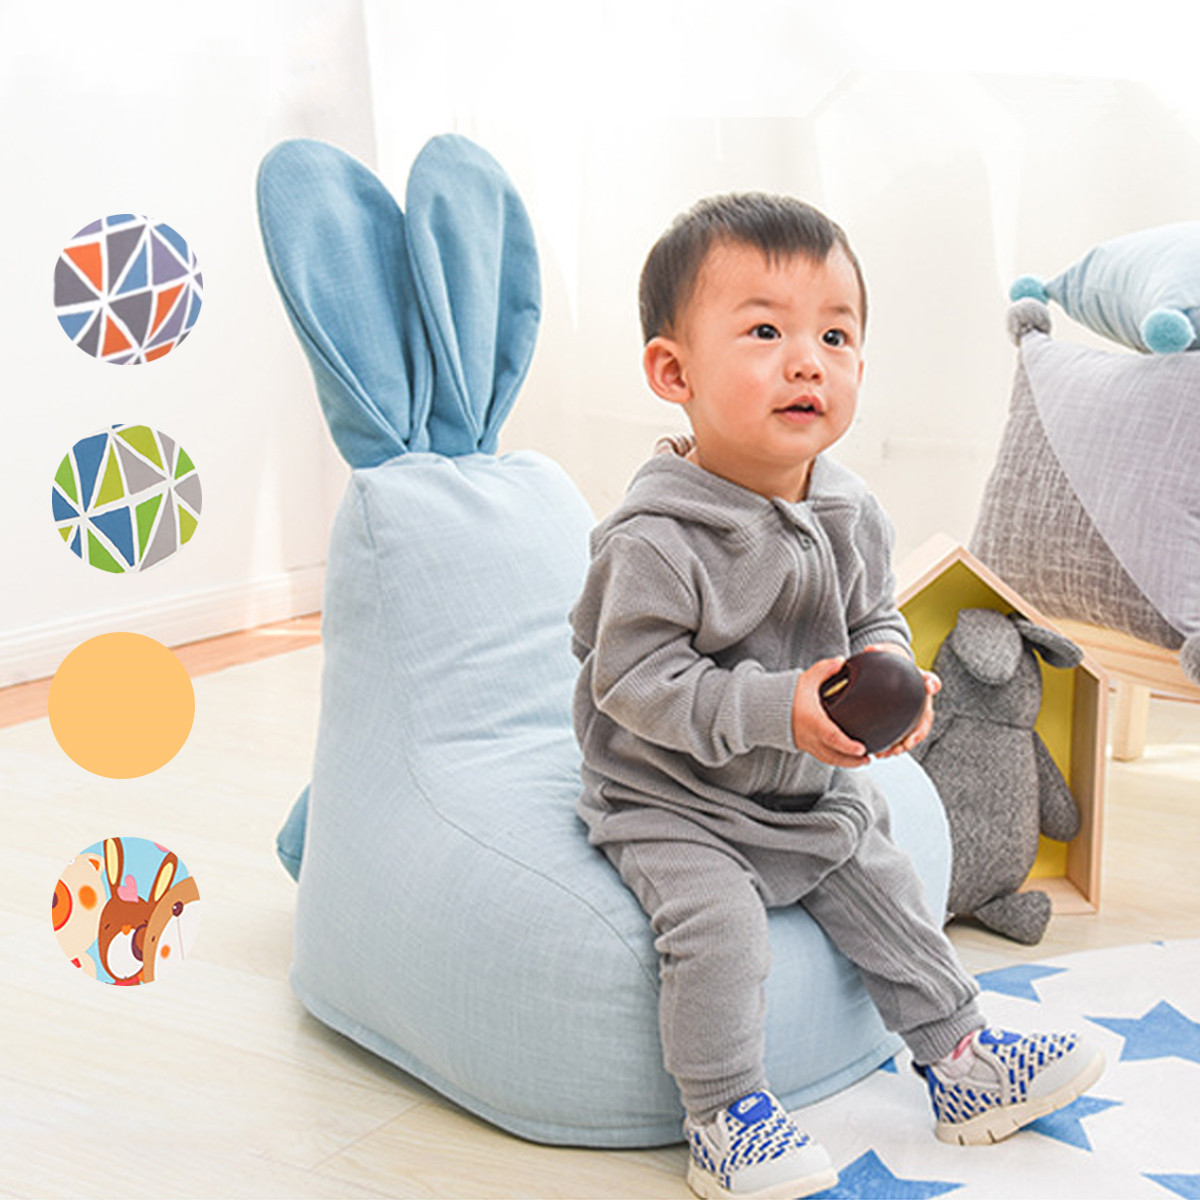 Nordic Baby Bean Bag Chair With Filler Pouf Kids Sofa Baby Seat Pillow Portable Chairs for Baby Infant Room Decor Childs toysNordic Baby Bean Bag Chair With Filler Pouf Kids Sofa Baby Seat Pillow Portable Chairs for Baby Infant Room Decor Childs toys